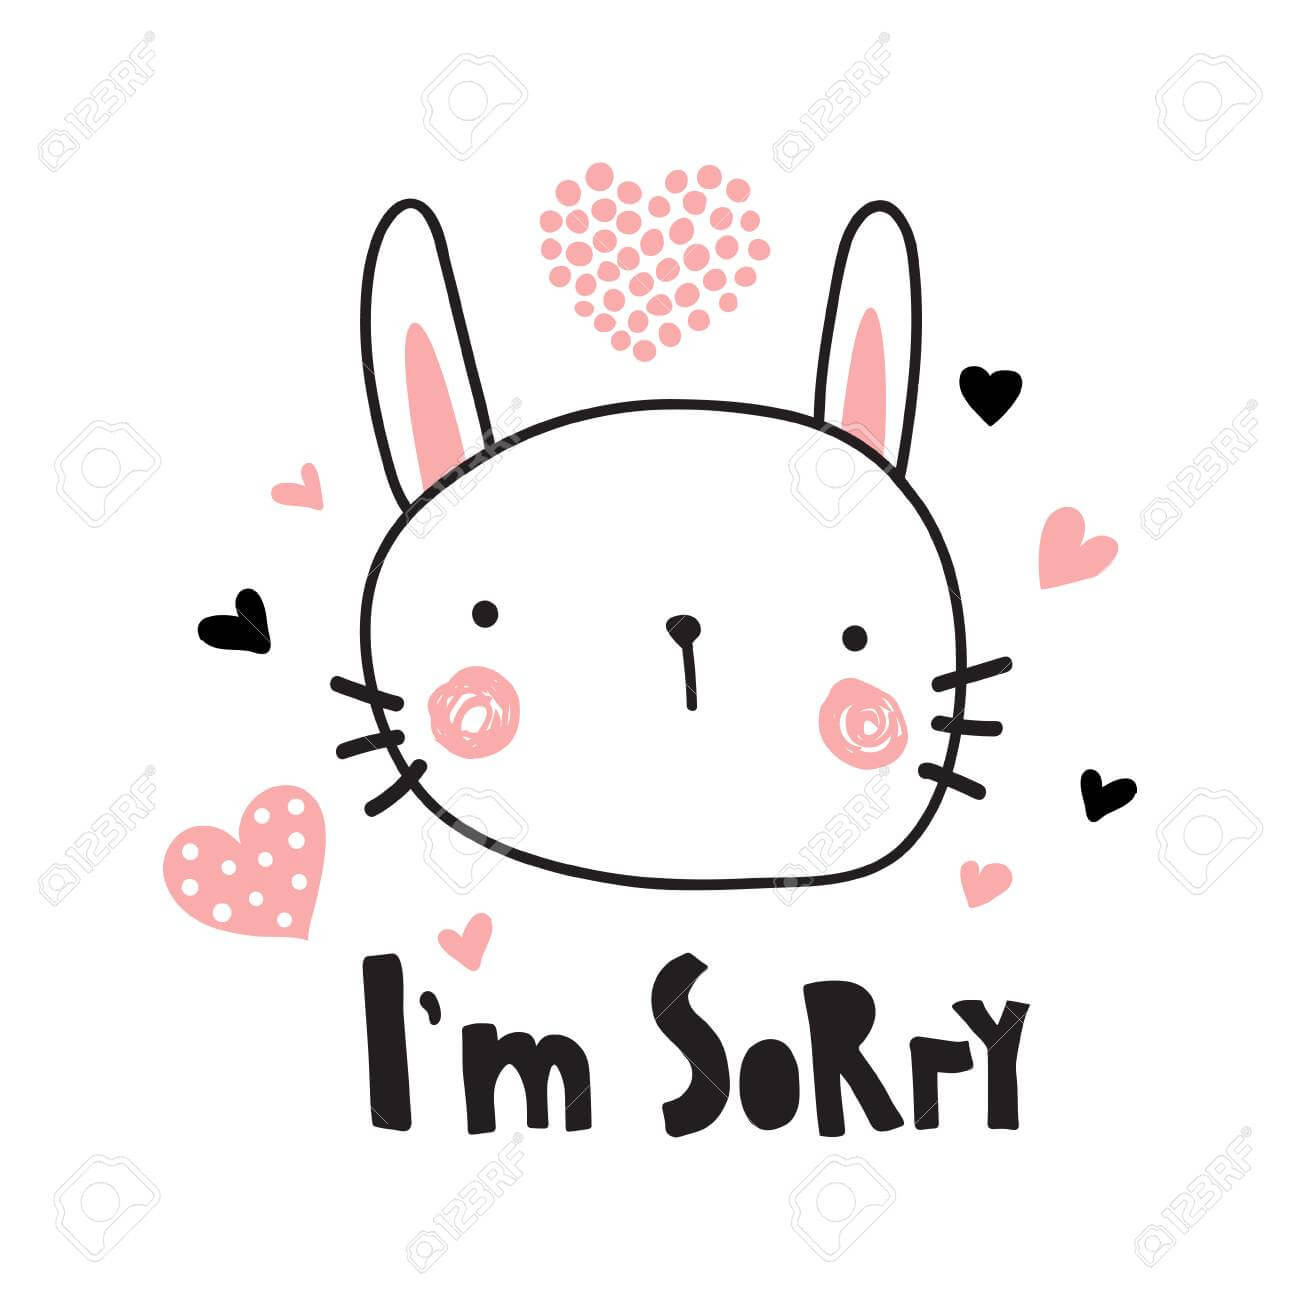 Sorry Card Template – Makar.bwong.co Pertaining To Sorry Card Template